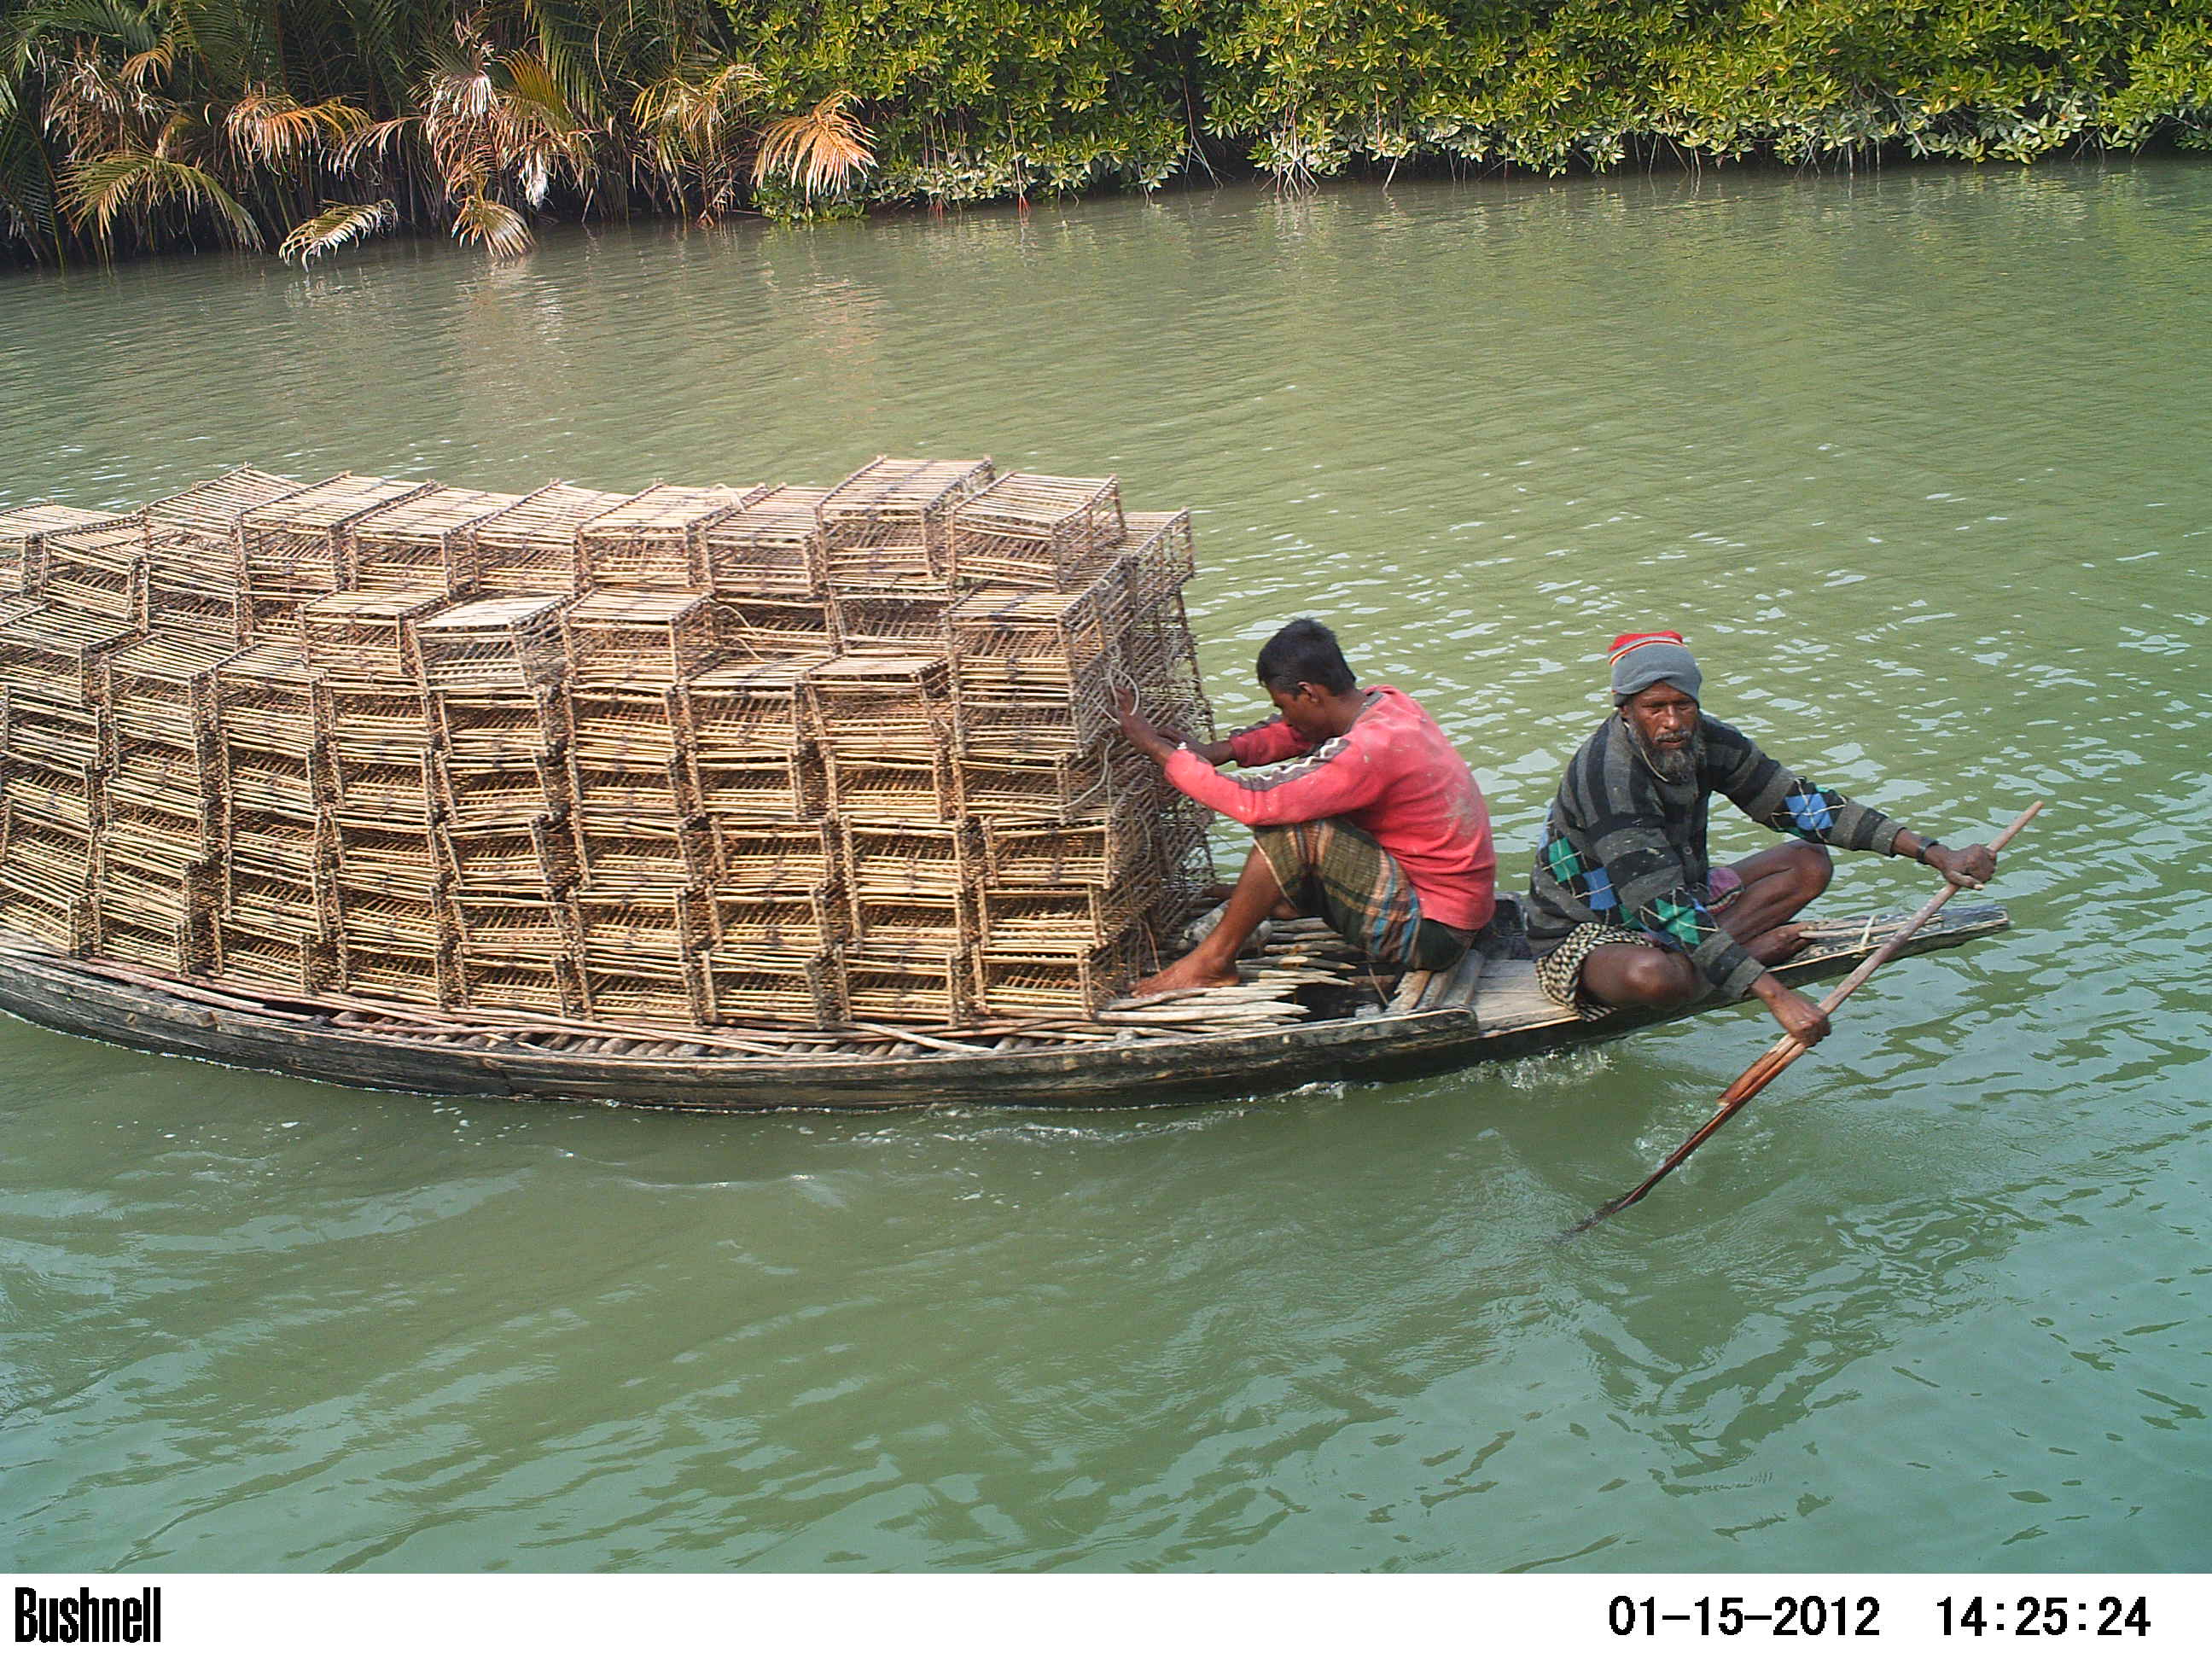 Another common Illegal Human Activity was crab fishing, easily recognizable by the presence of large amount of bamboo cages on the boats. Credits: A.N.M. Hossain, 2012